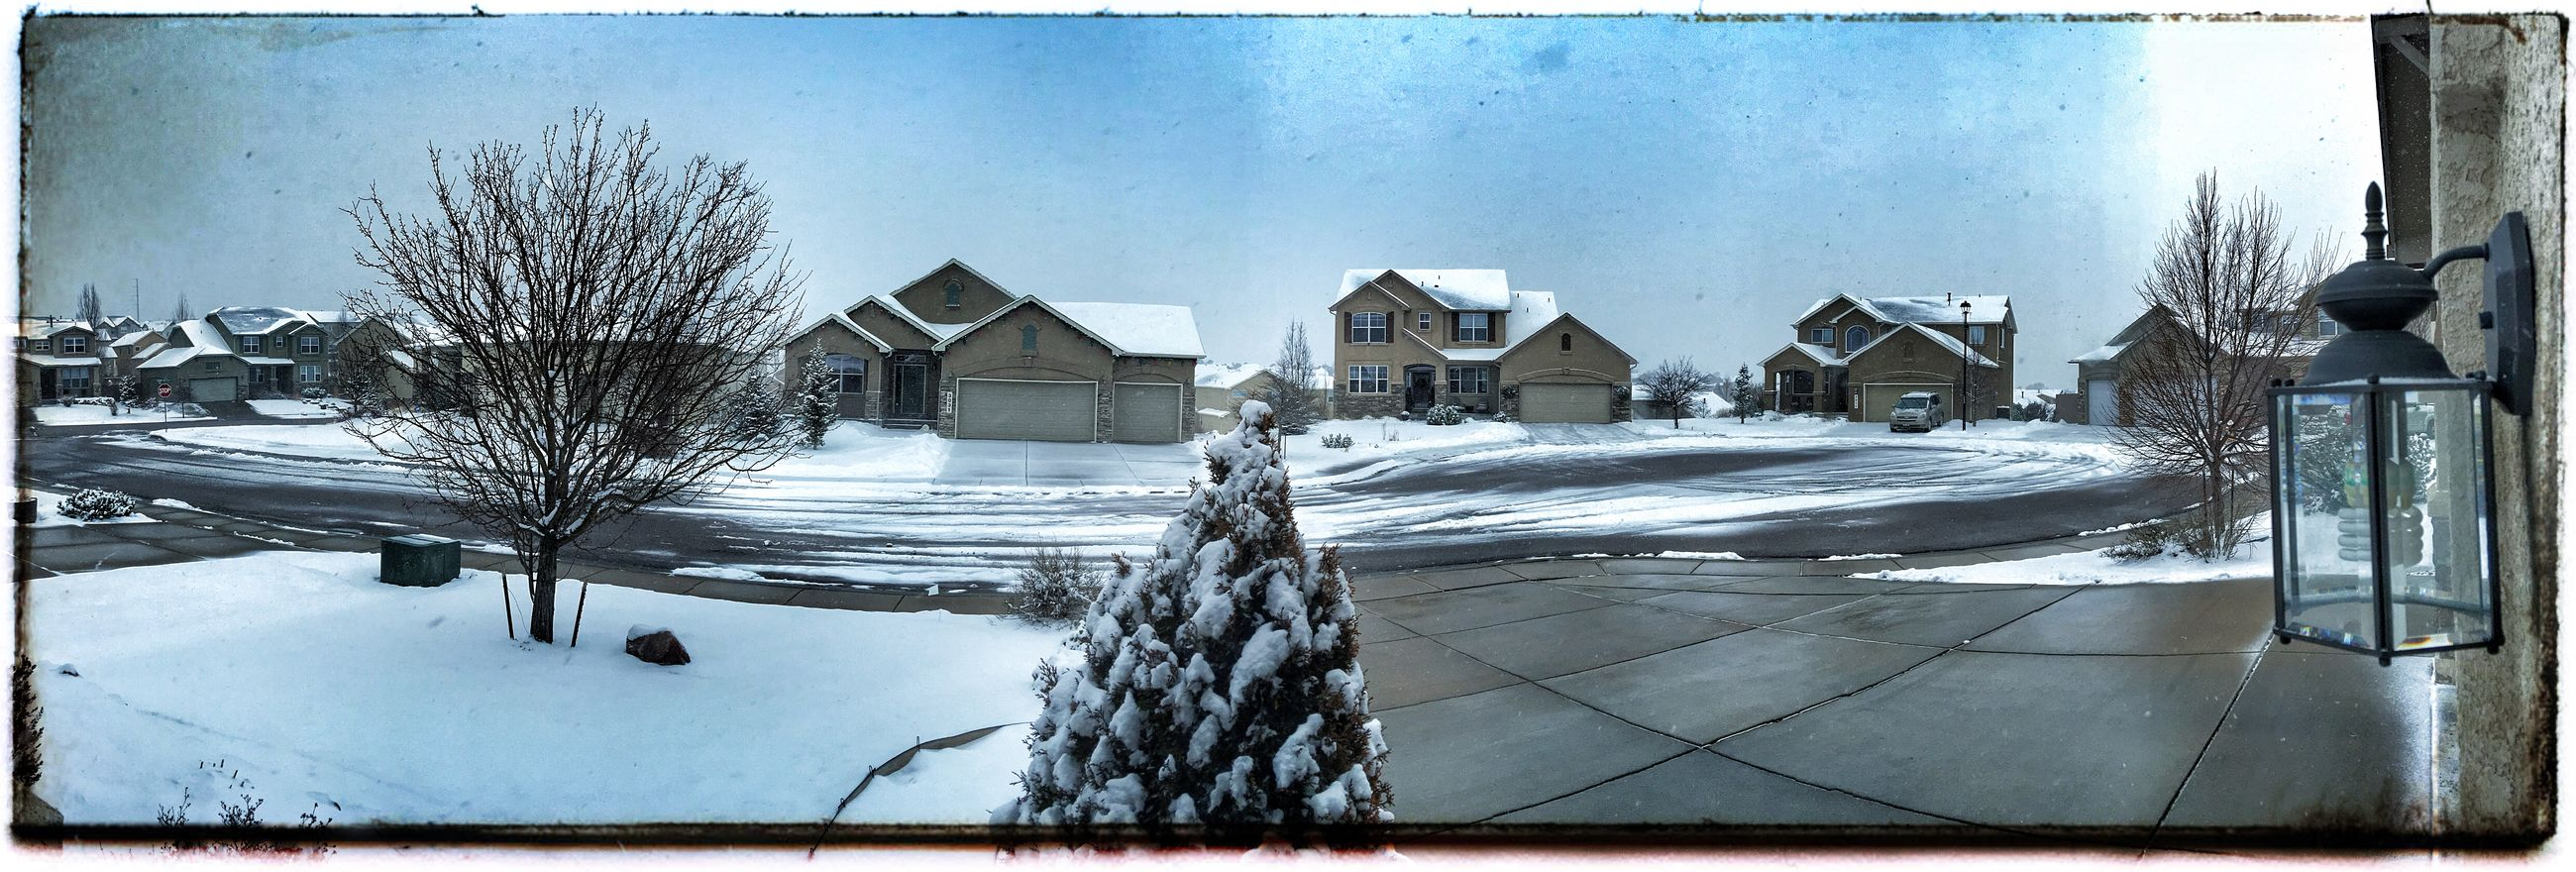 transfer print, building exterior, architecture, auto post production filter, built structure, snow, winter, cold temperature, city, sky, season, water, day, bare tree, residential building, building, residential structure, house, street, outdoors